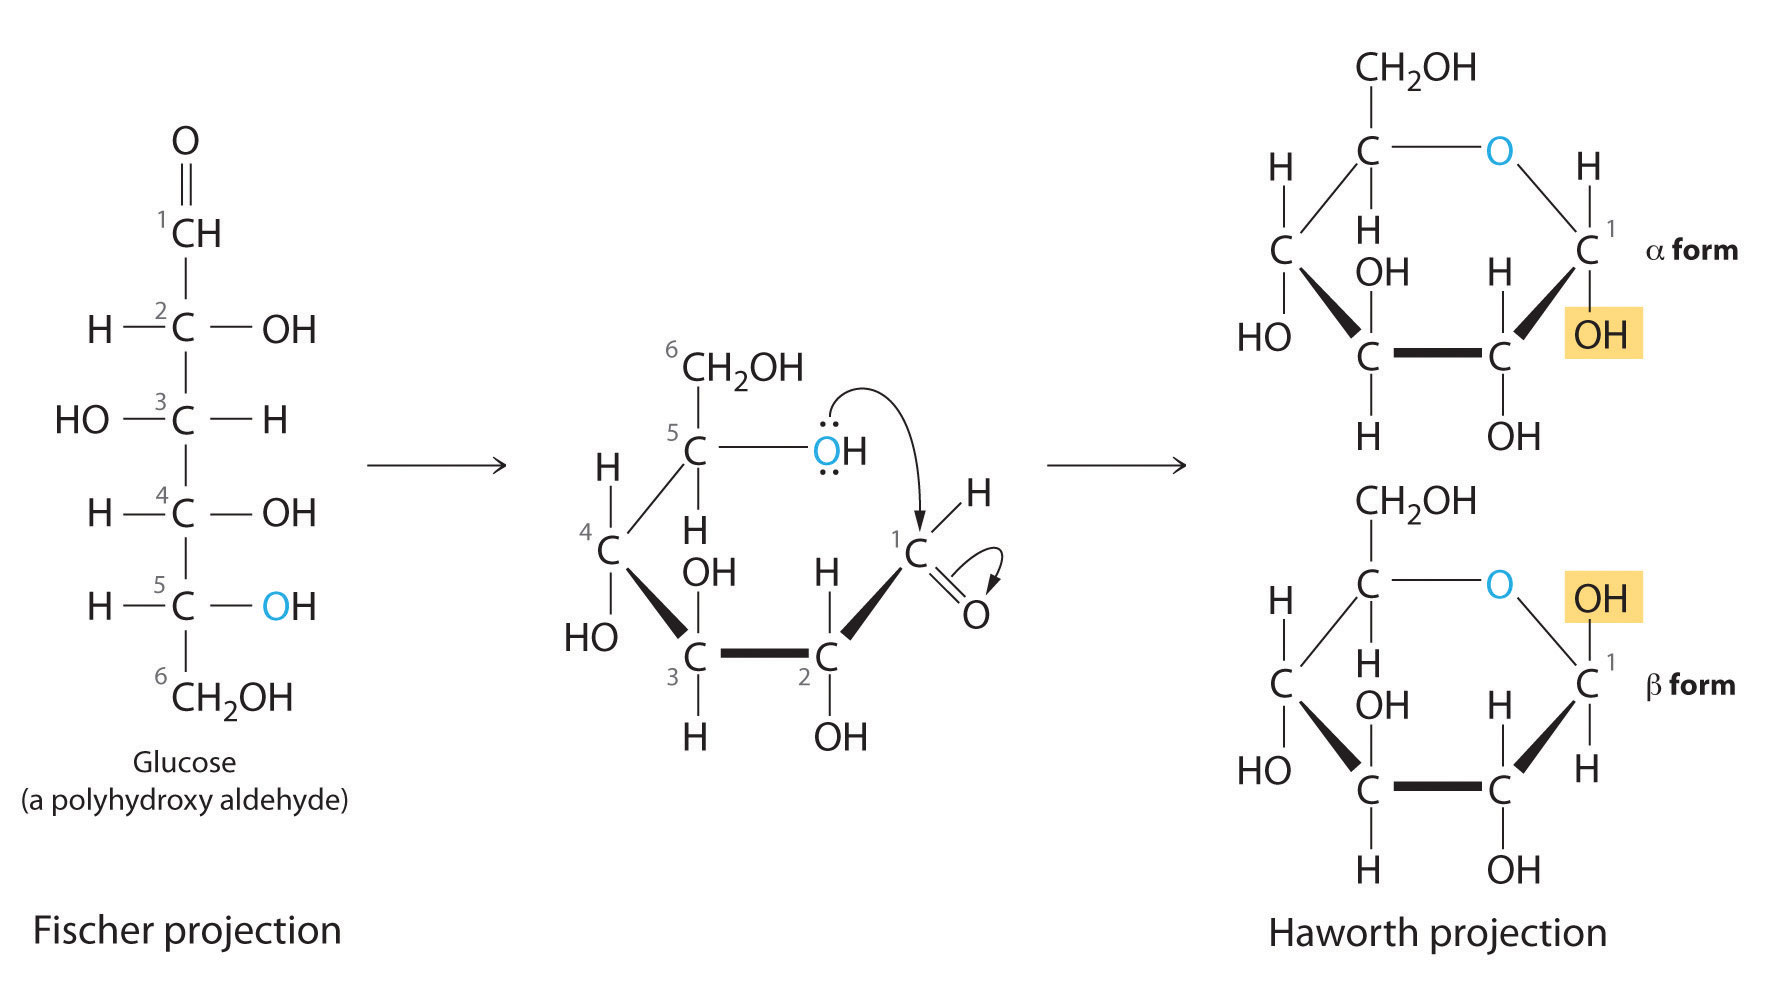 fructose fischer projection A fischer projection is used to differentiate between l- and d- molecules on a fischer projection, the penultimate (next-to-last) carbon of d sugars are depicted with hydrogen on the left and hydroxyl on the right.